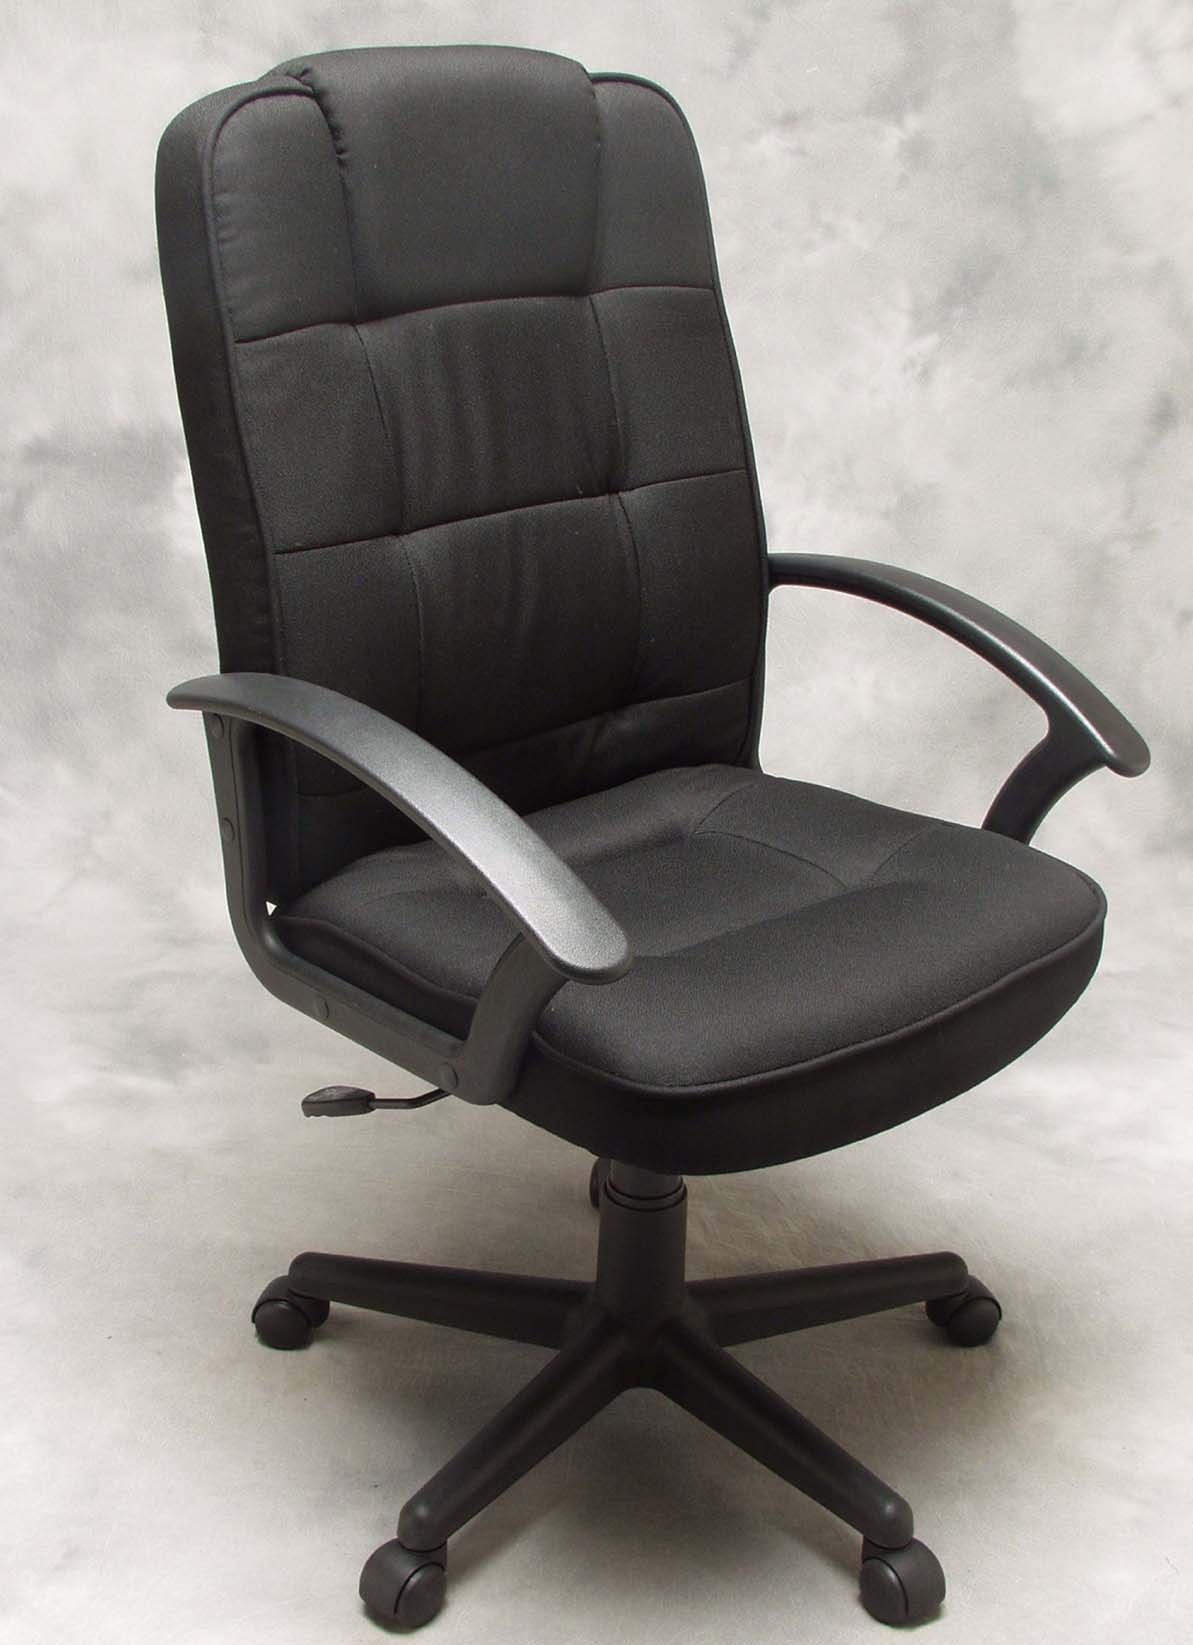 Comfortable Chair Store Cpsc Gruga U S A Announce Recall To Repair Office Chairs